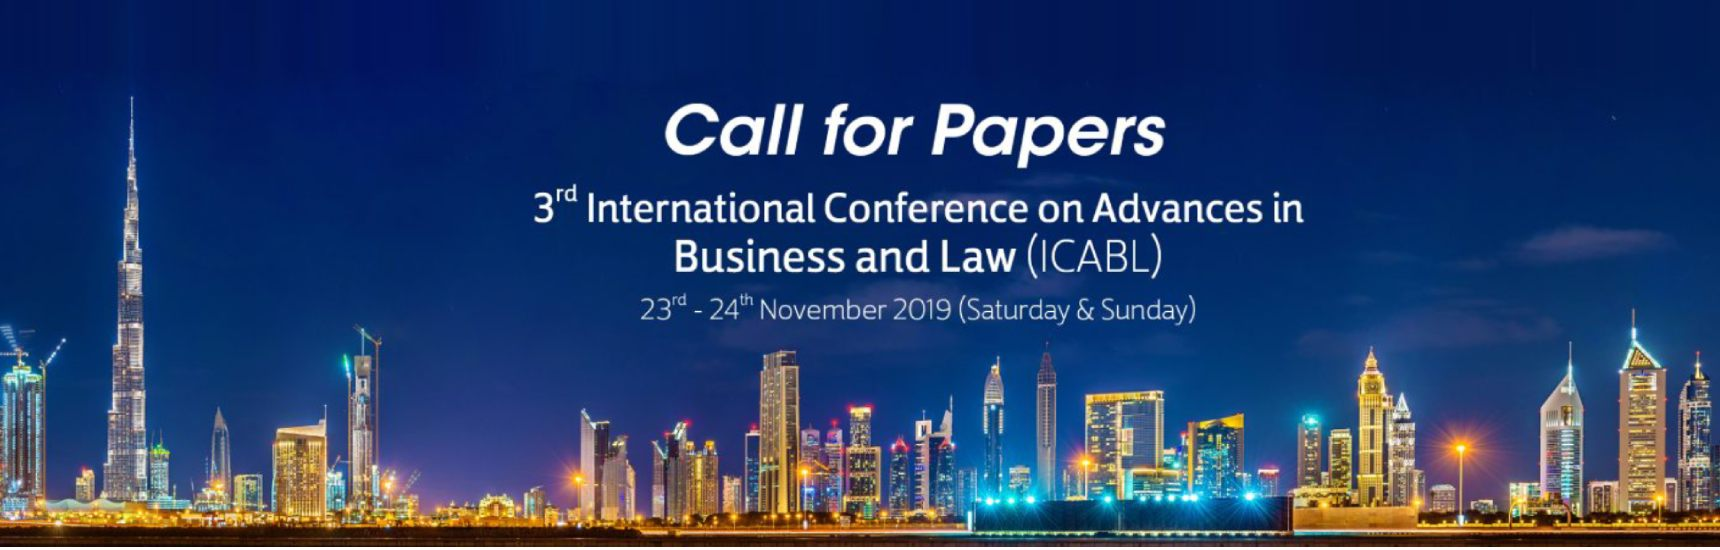 3rd International Conference on Advances in Business and Law (ICABL)